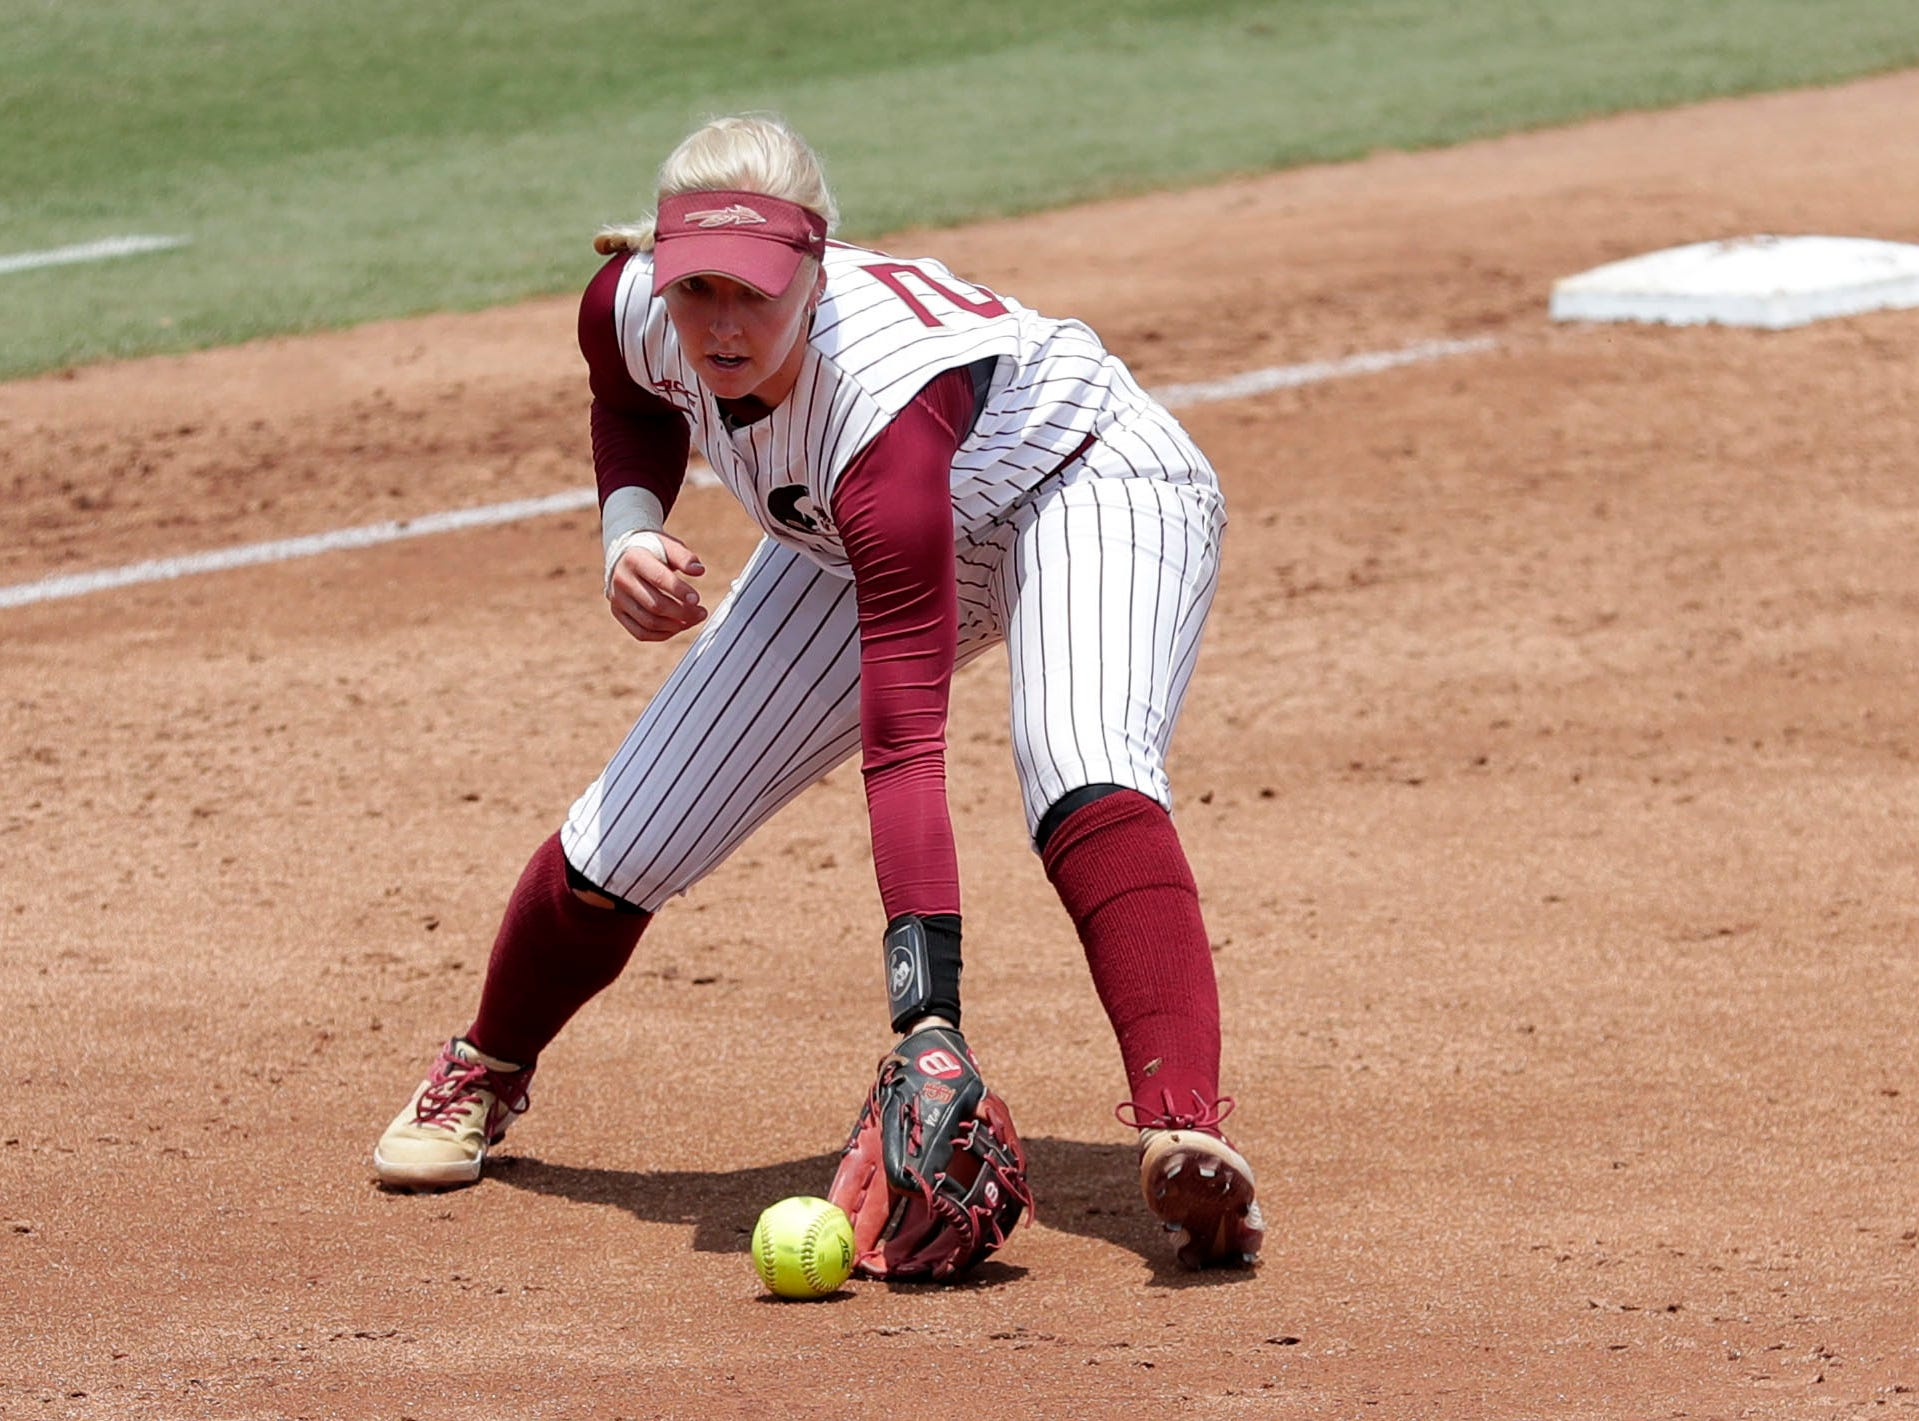 Florida State Seminoles utility player Sydney Sherrill (24) scoops up a ground ball. The Florida State Seminoles host the UNC Tar Heels for the ACC Softball Tournament finals Saturday, May 11, 2019.